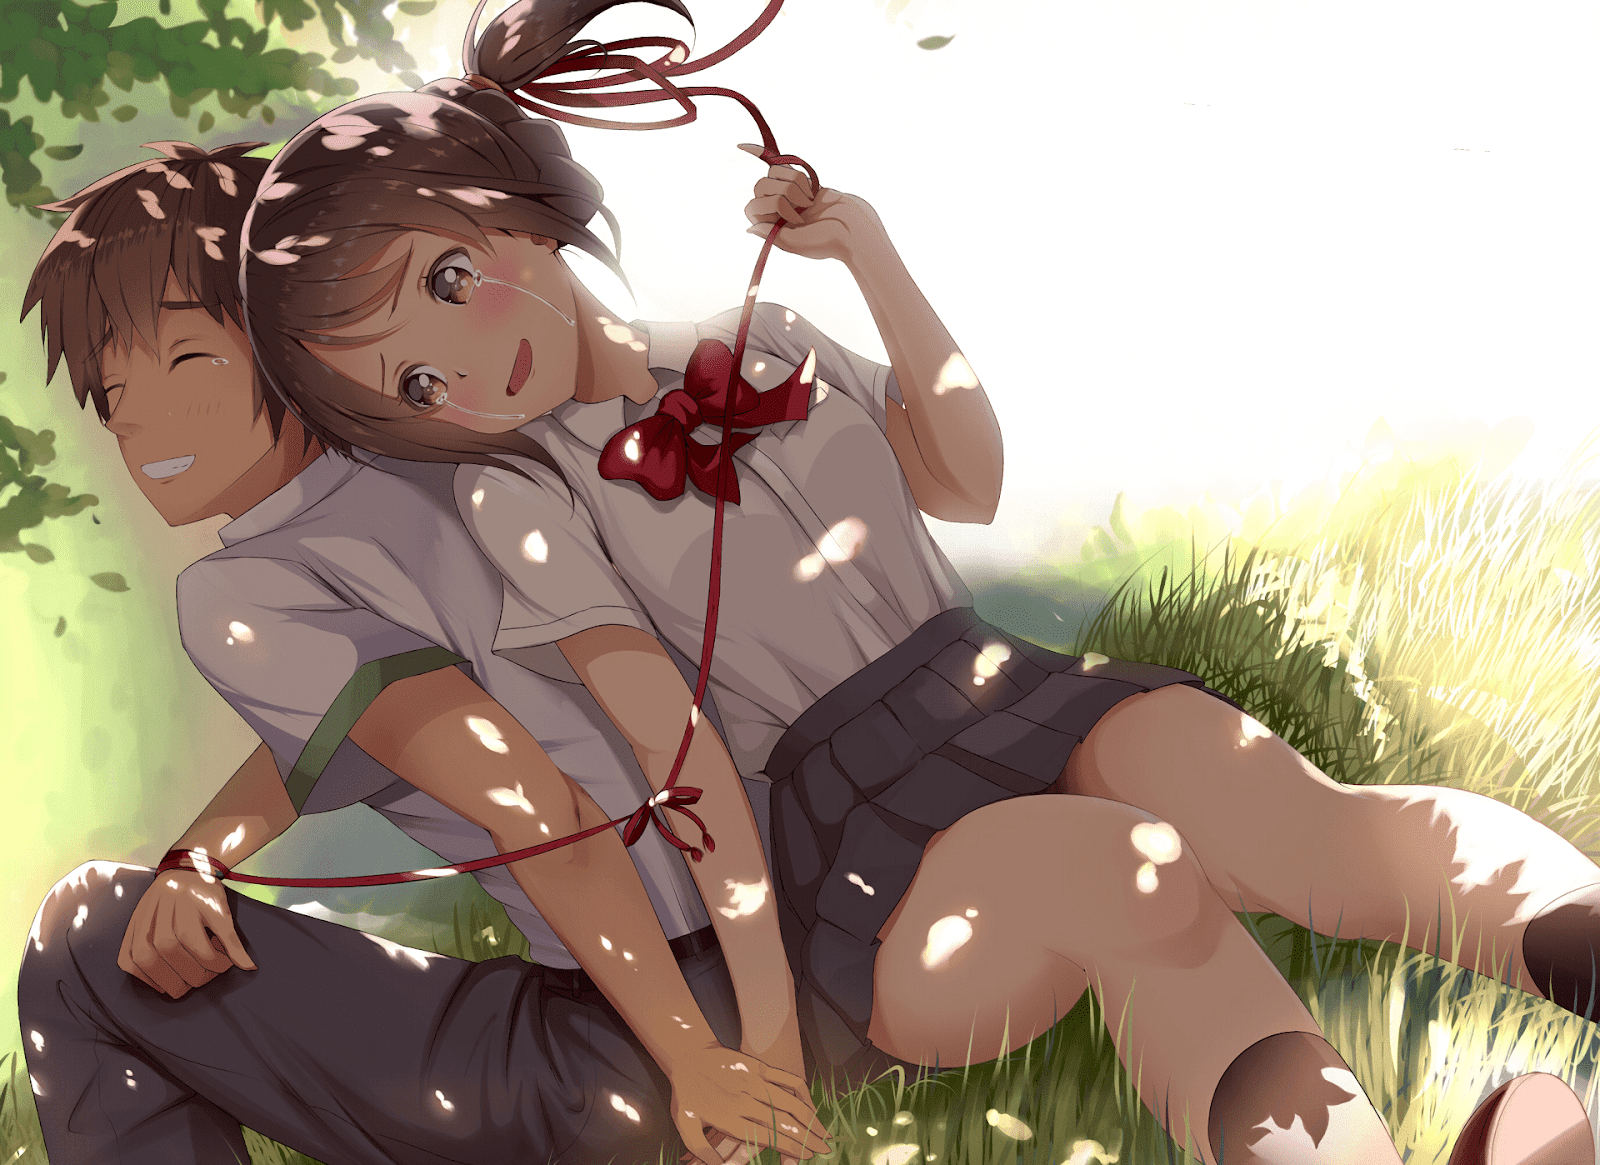 AowVN%2B%252855%2529 - [ Hình Nền ] Anime Your Name. - Kimi no Nawa full HD cực đẹp | Anime Wallpaper